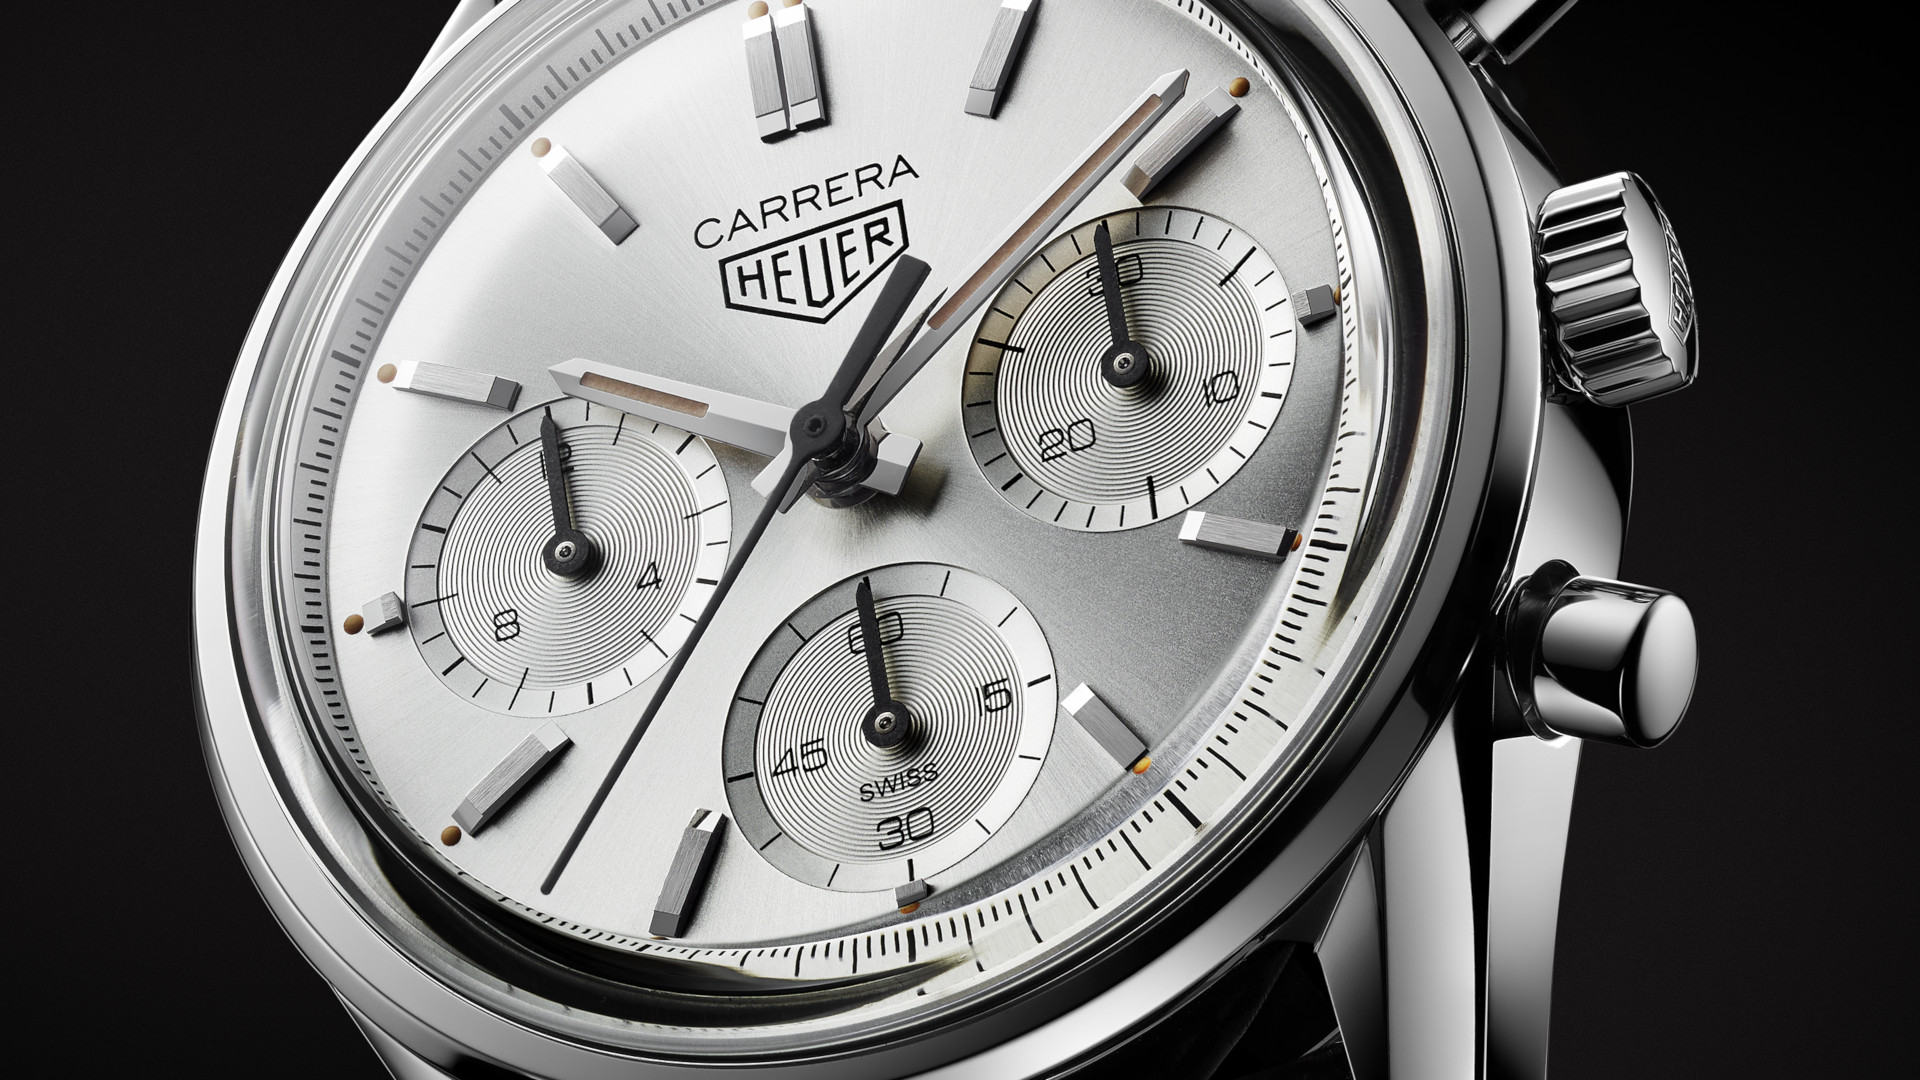 TAG Heuer celebrates a legendary milestone with the legendary Carrera 160 Years Silver Limited Edition